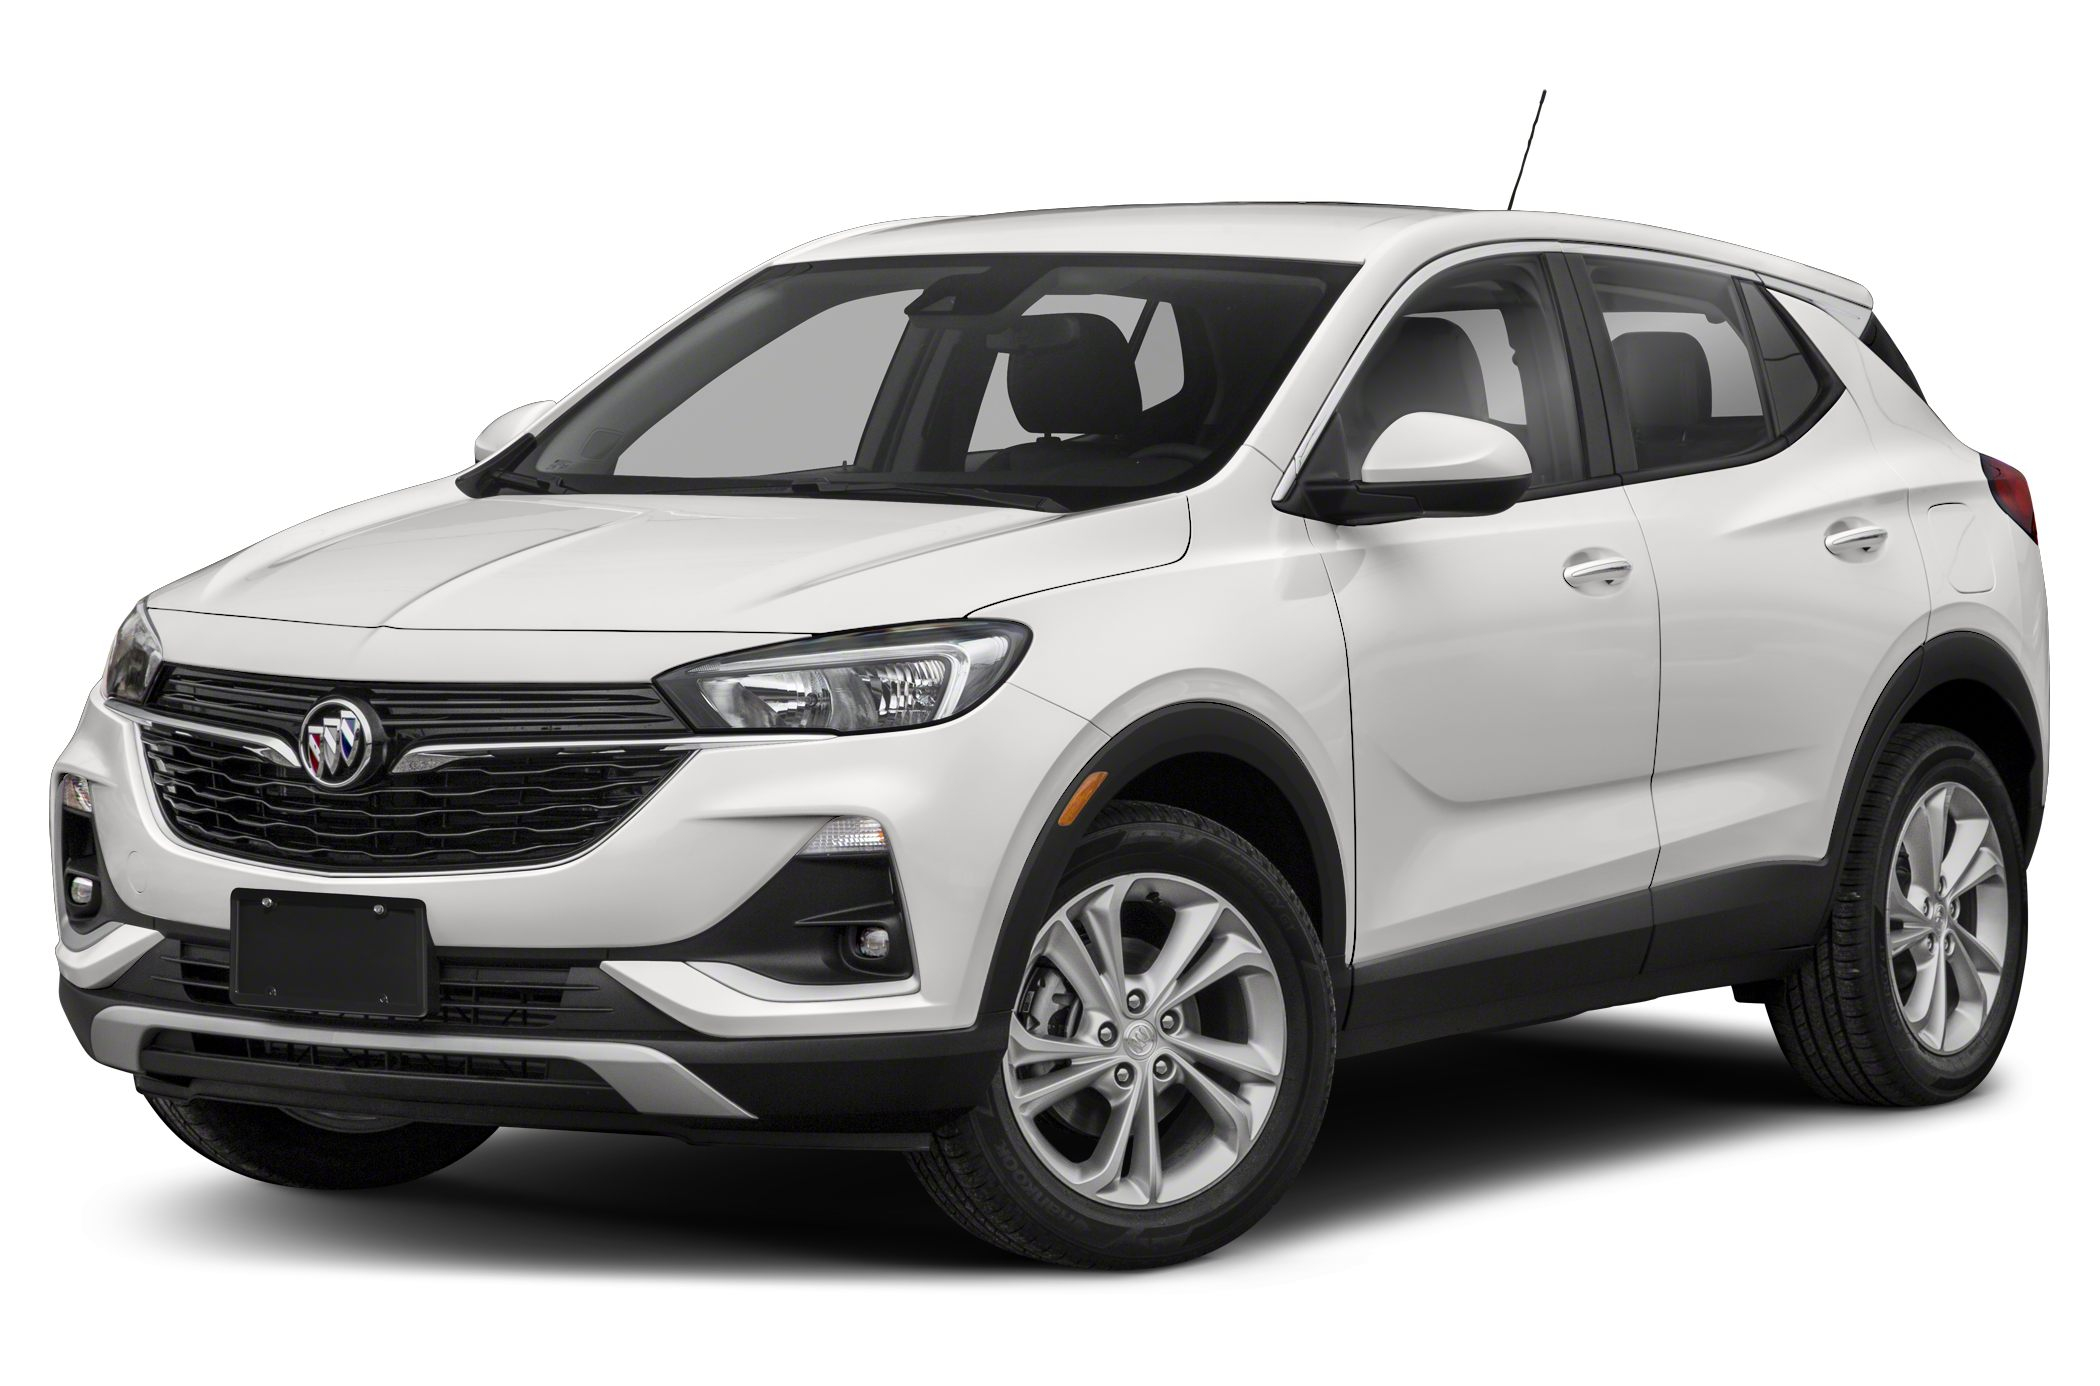 2020 Buick Encore Gx Essence All-Wheel Drive Specs And Prices 2021 Buick Encore Seat Covers, Safety Features, Towing Capacity